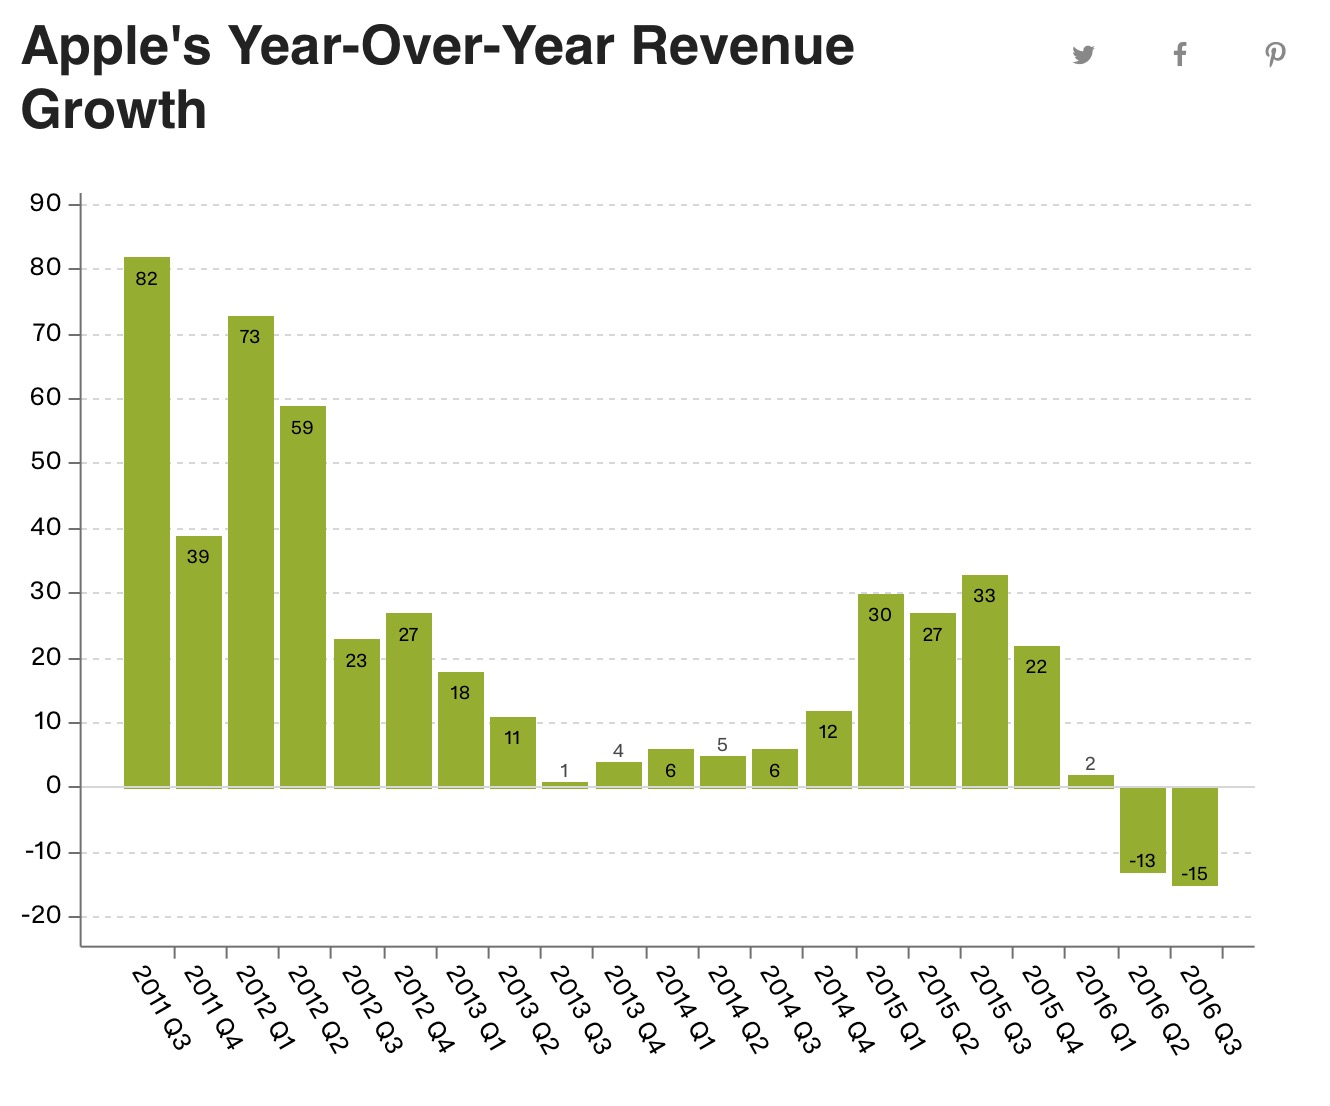 What happened to Apple in the second fiscal quarter of 2016